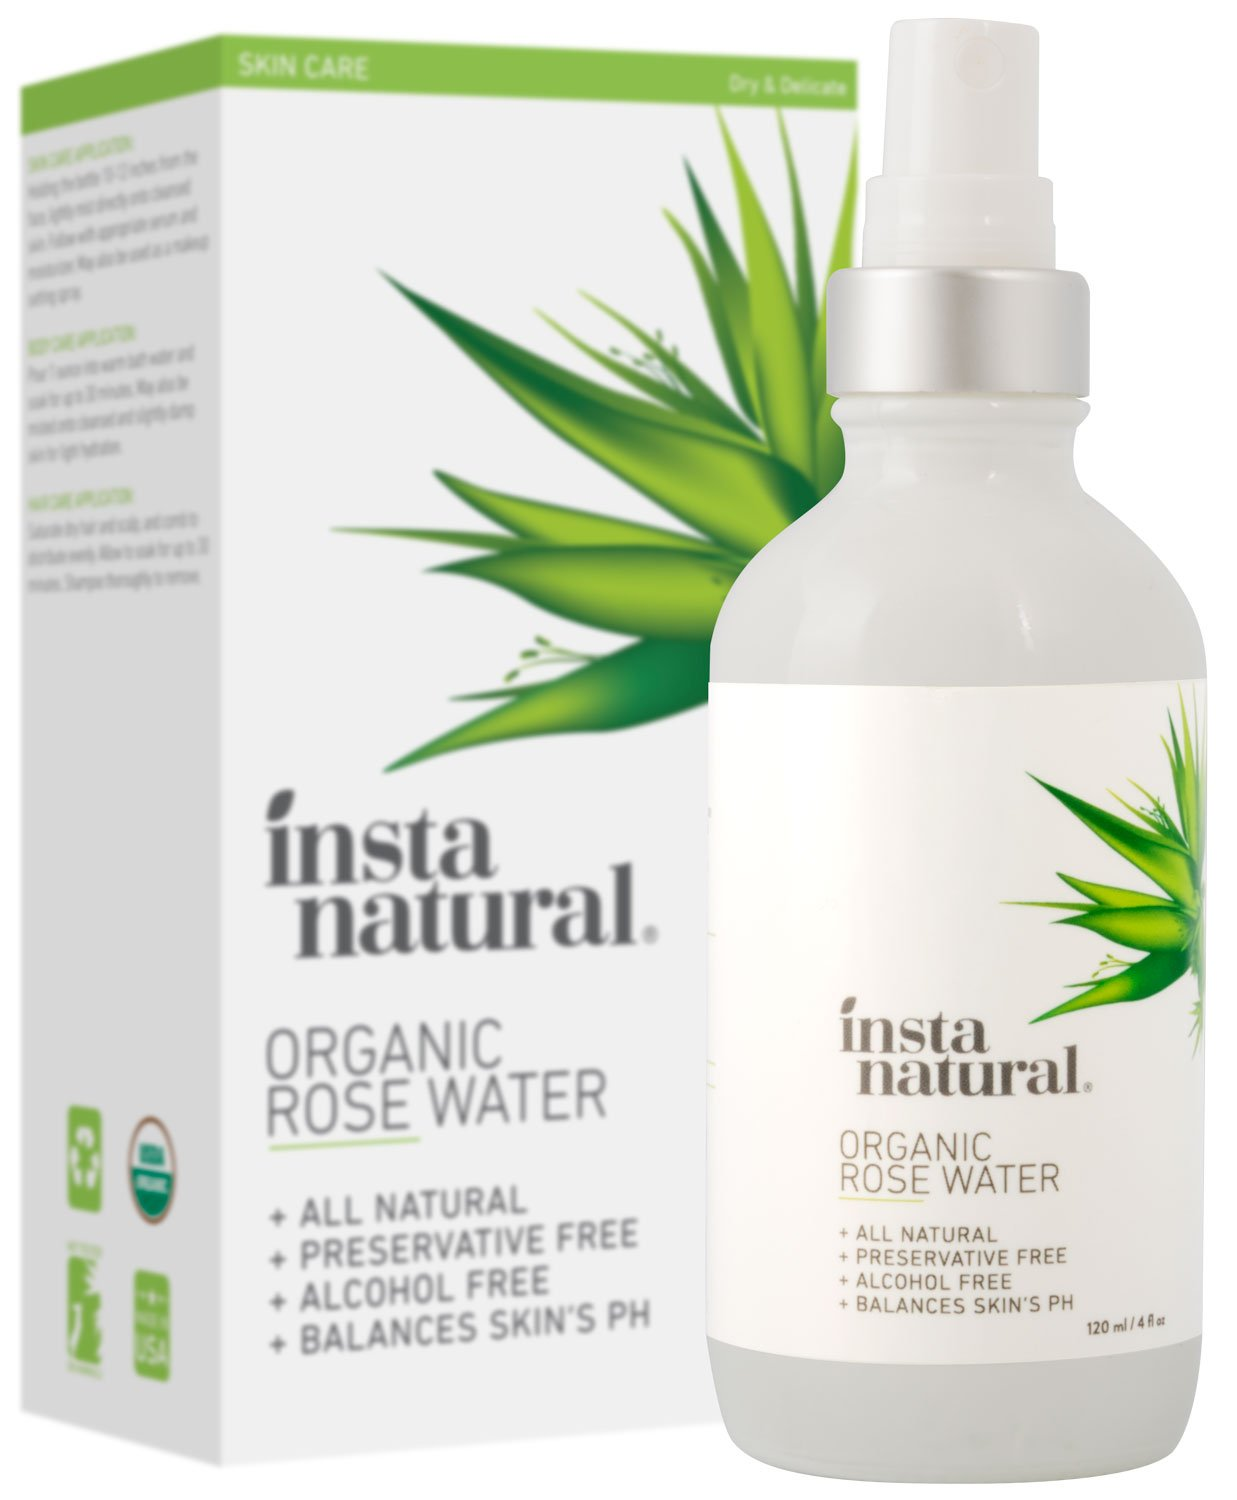 InstaNatural Rose Water Facial Toner - Organic, Natural Astringent Face Mist - Eau Fraiche - No Alcohol - Calming Treatment & Primer to Clear, Tighten, & Hydrate Pores & Breakout Prone Skin - 4 oz SETAF INS011202000118